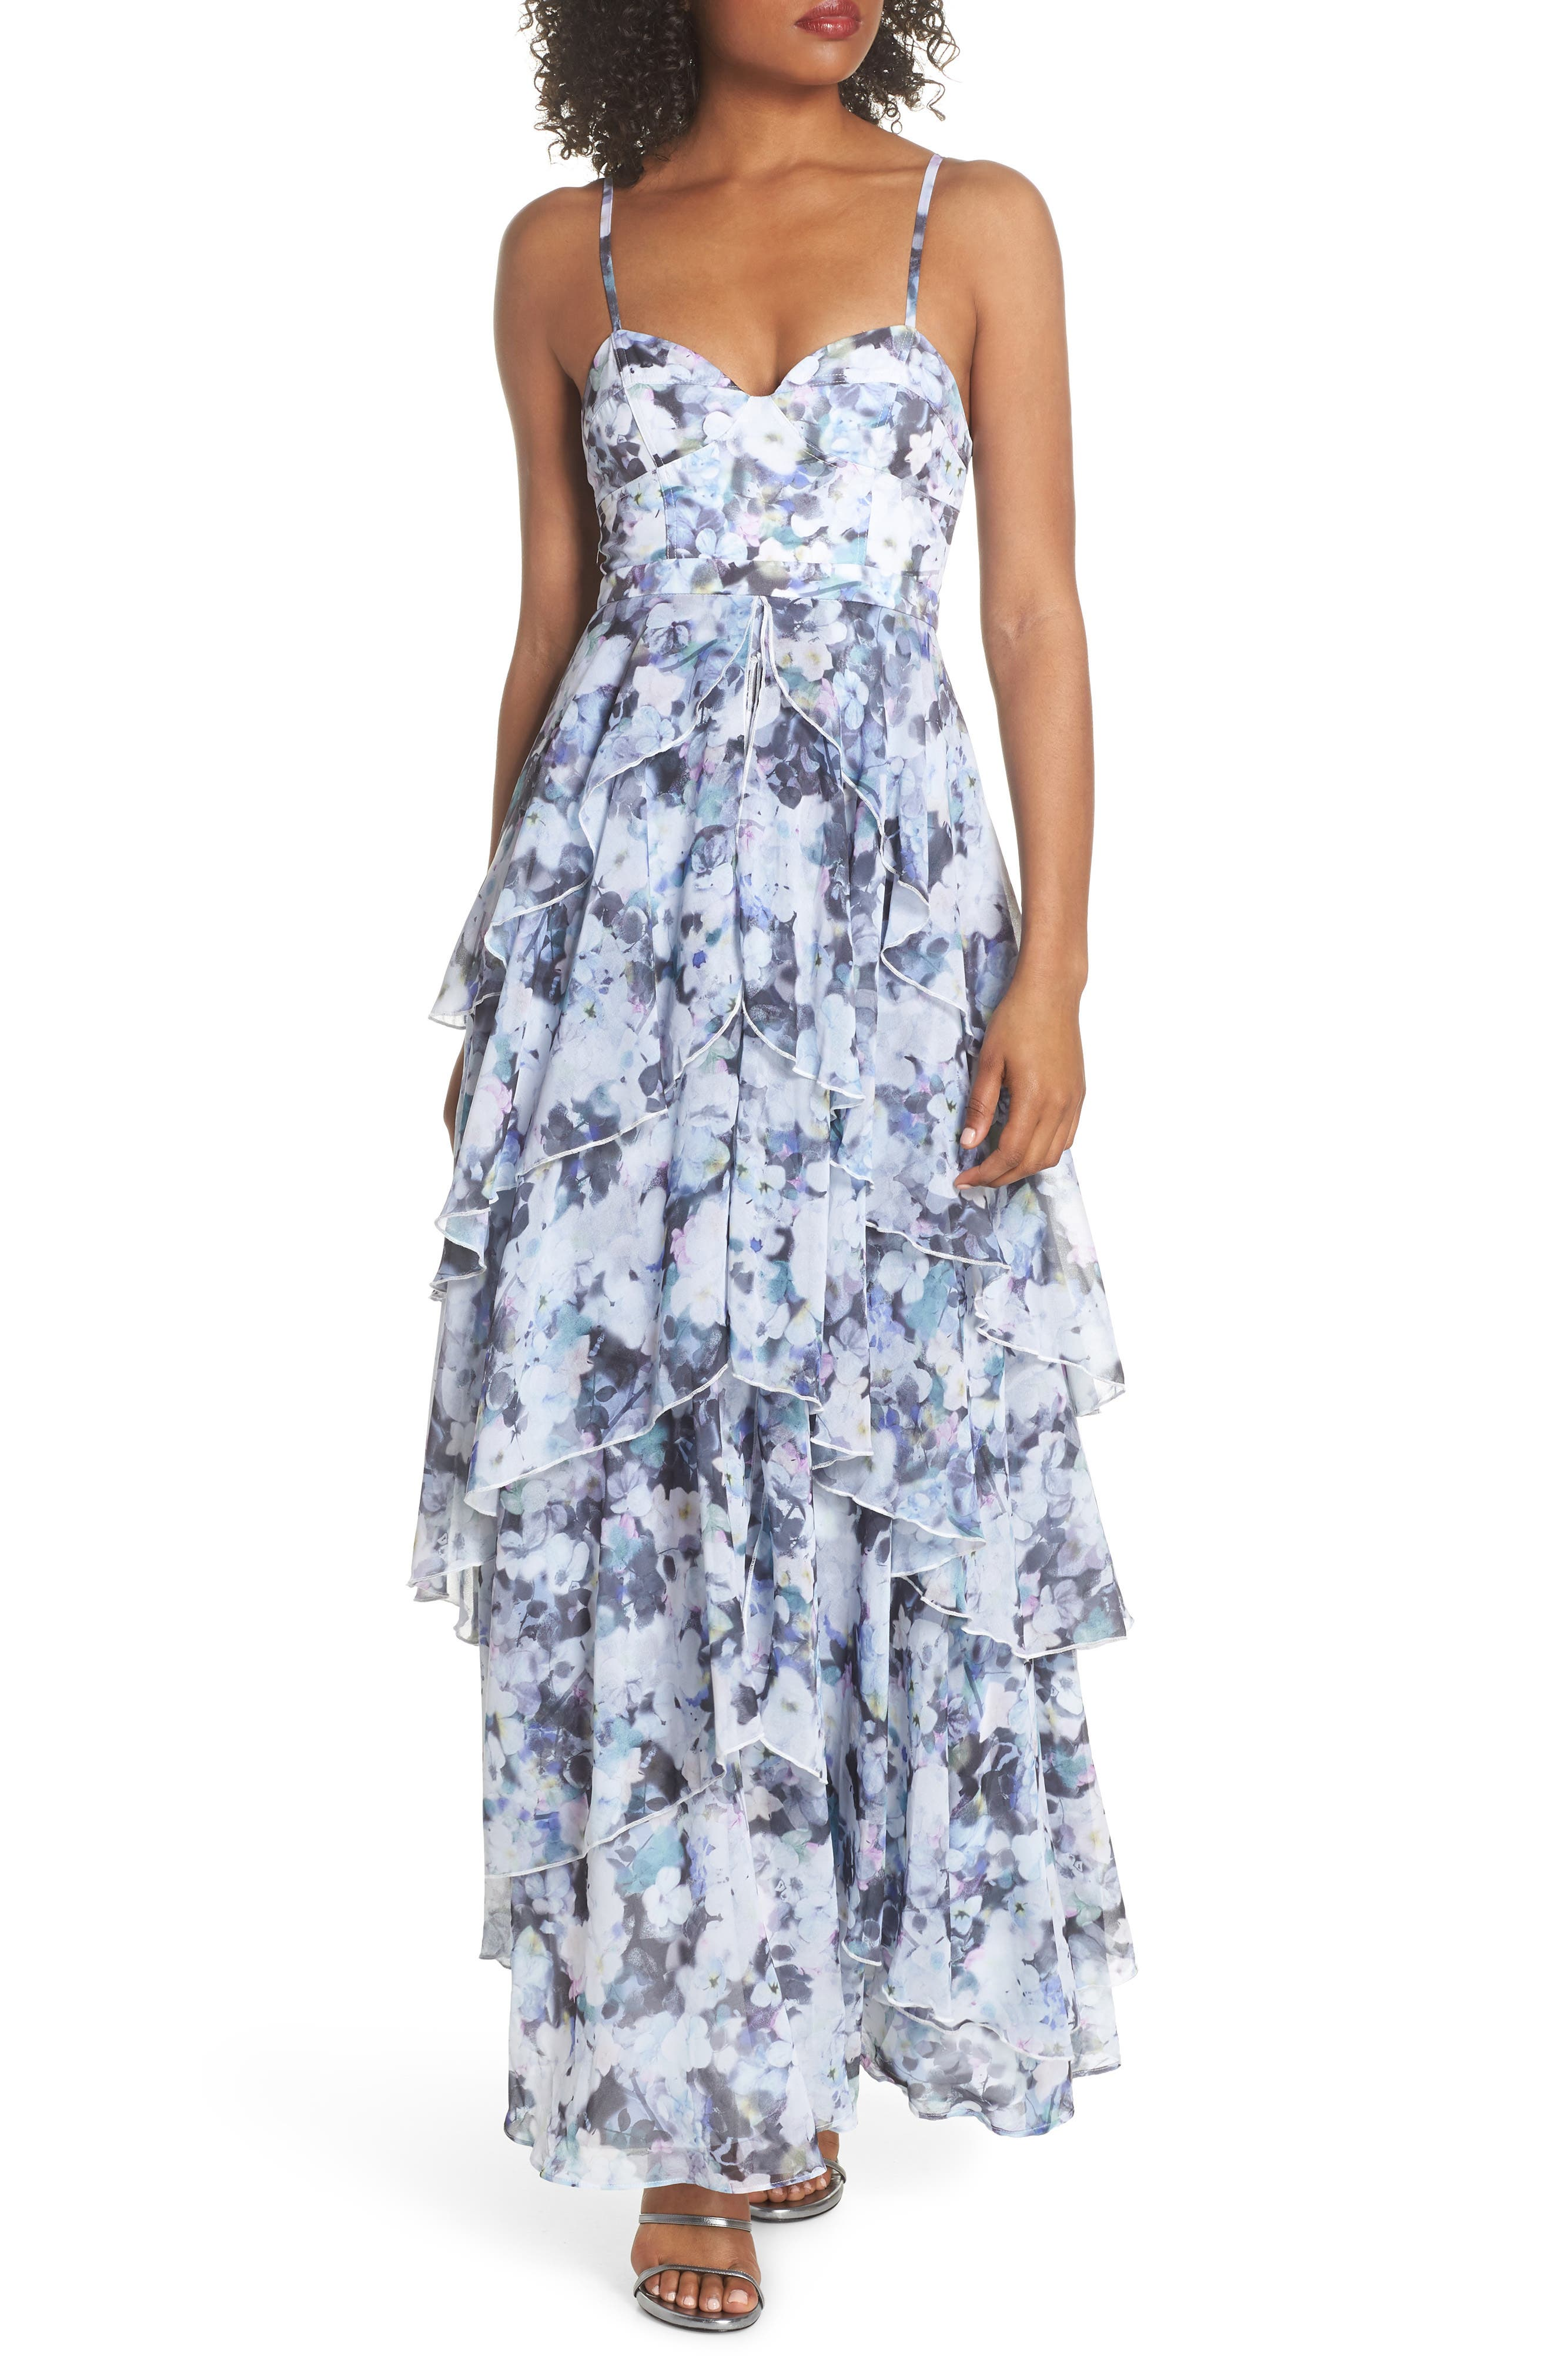 Catherine Floral Print Gown,                             Main thumbnail 1, color,                             450